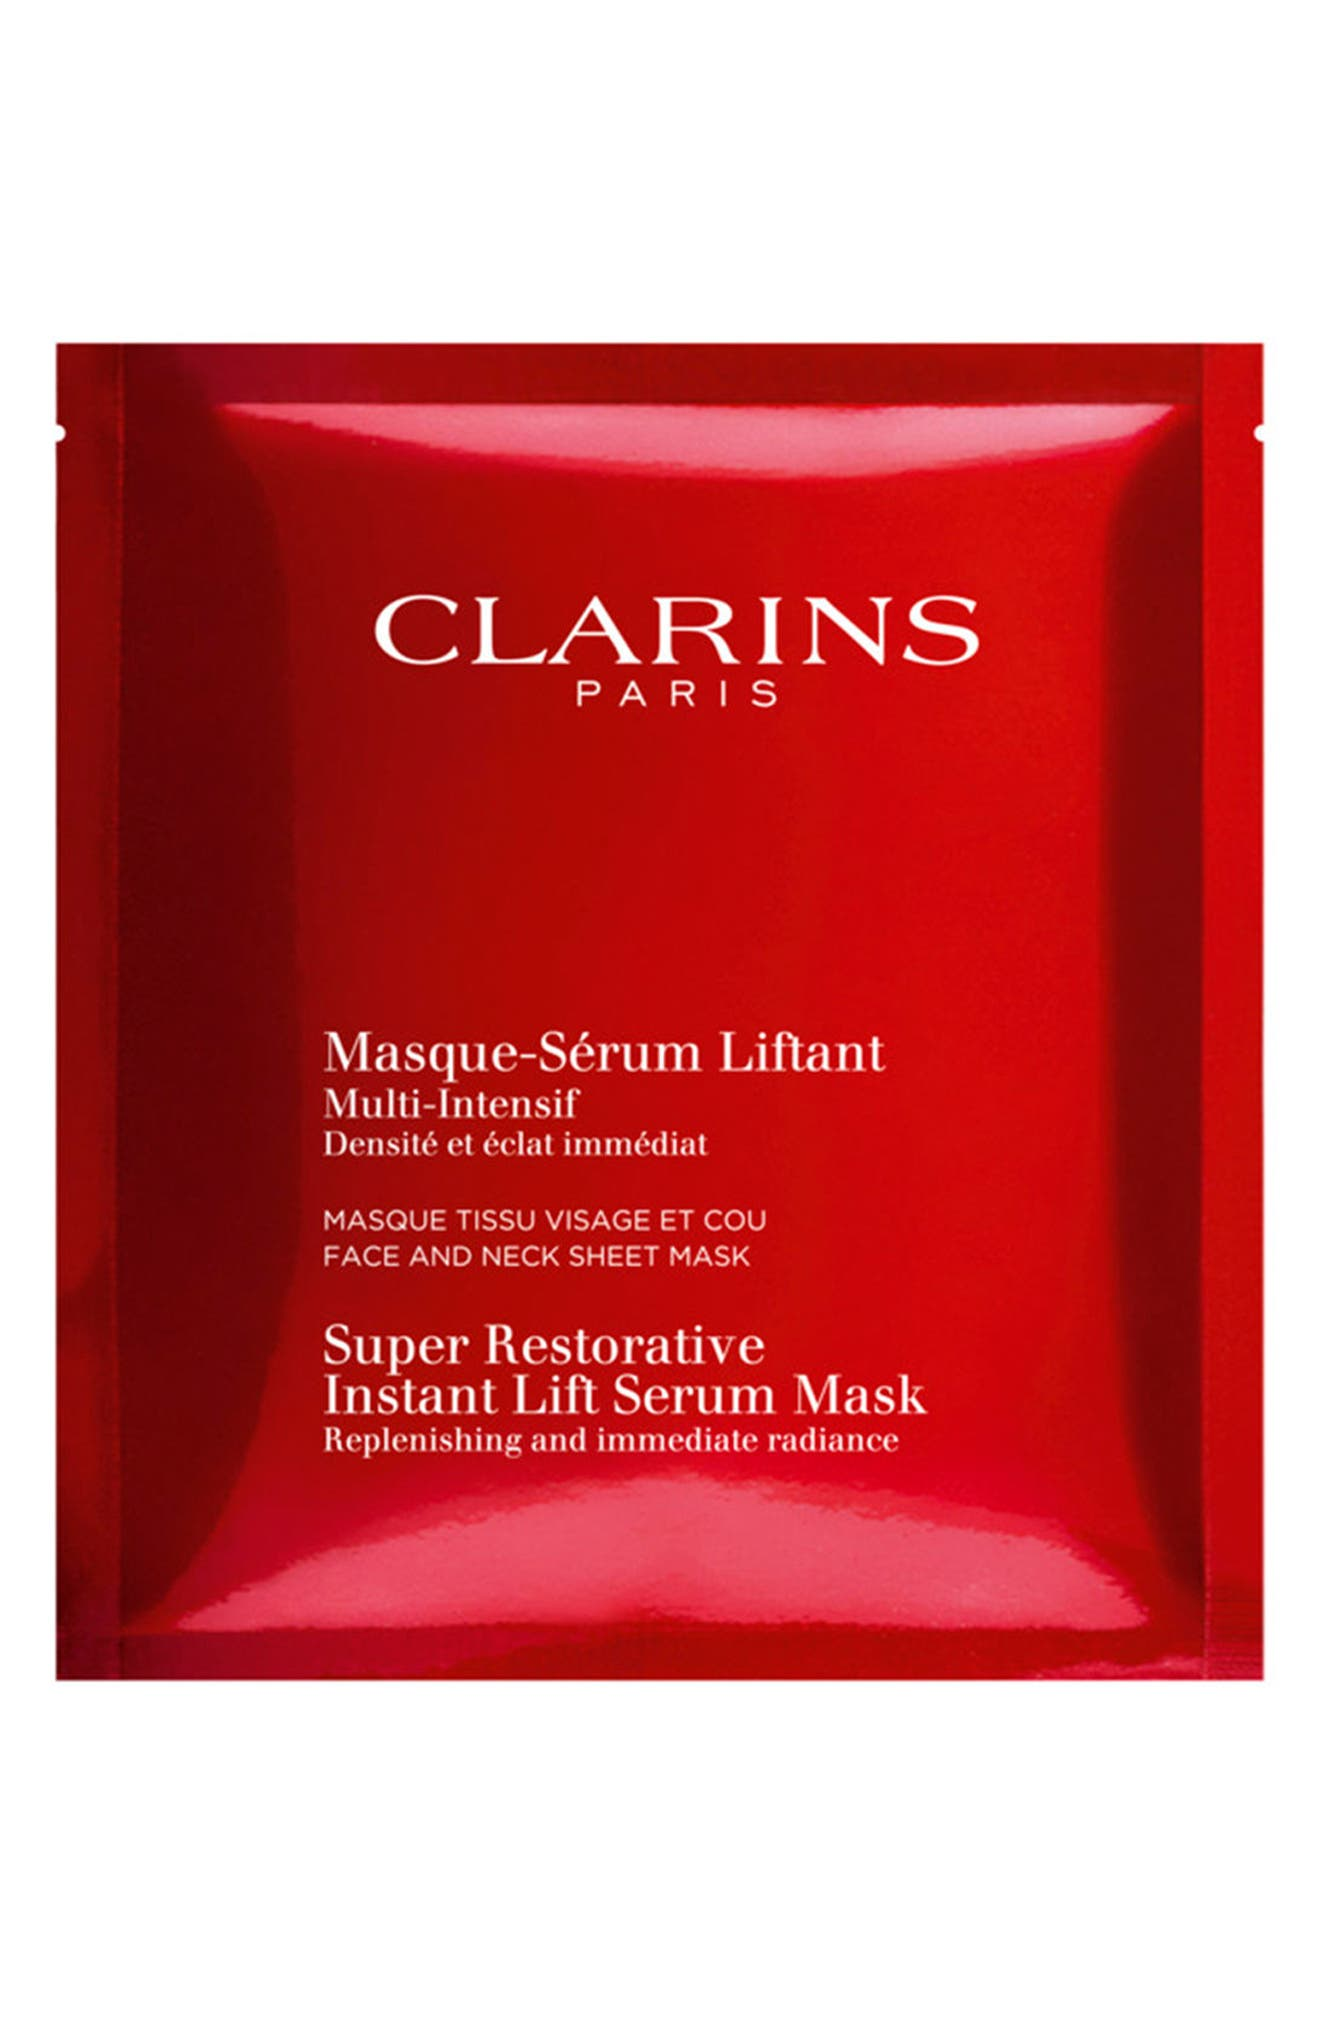 Alternate Image 1 Selected - Clarins 5-Pack Super Restorative Instant Lift Serum Mask